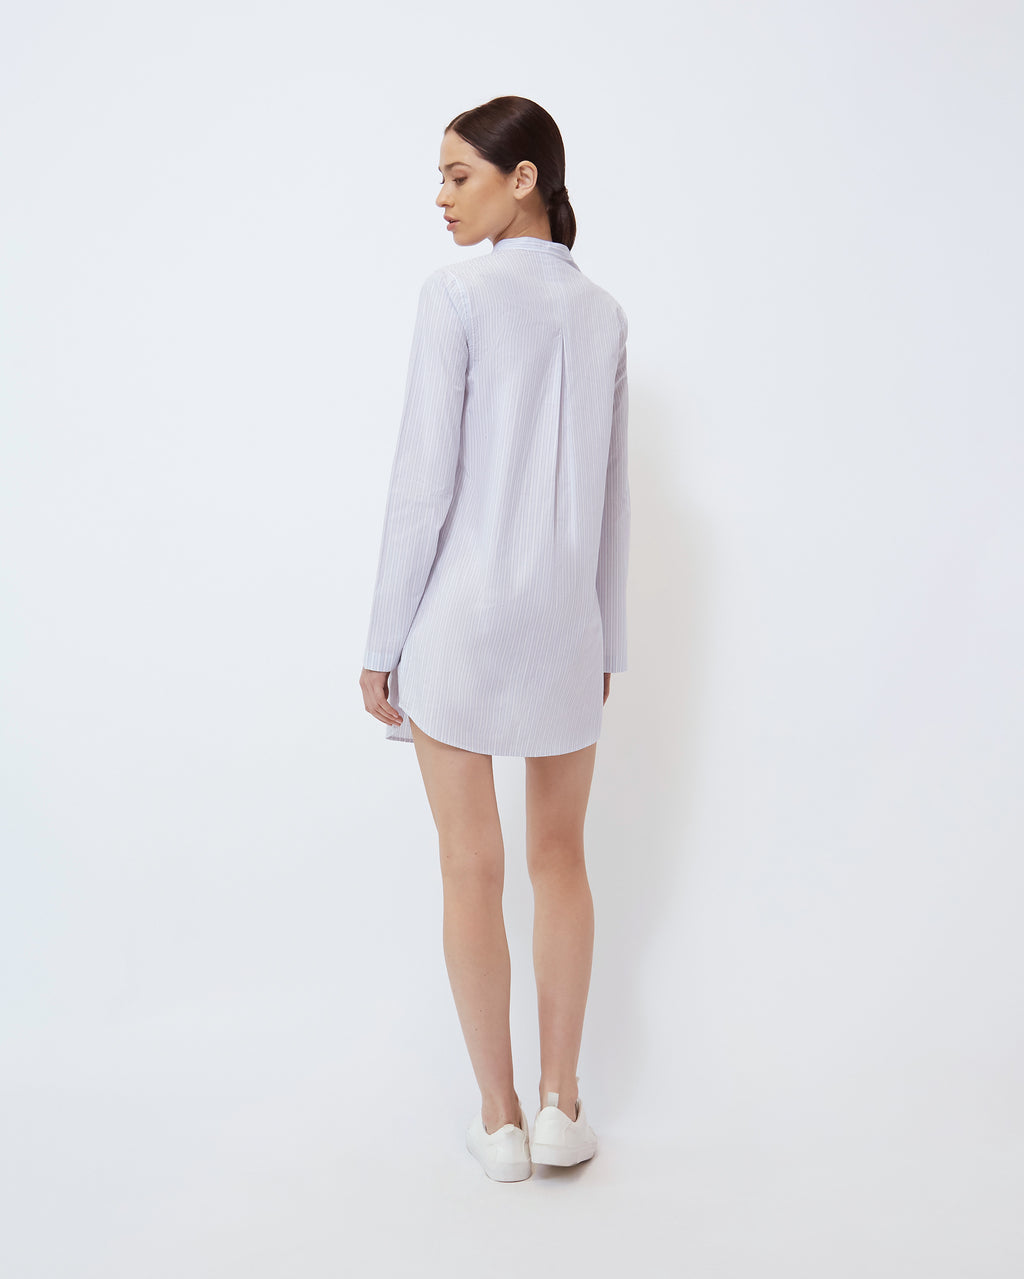 The Ellis Dress in Skylight/Optic White